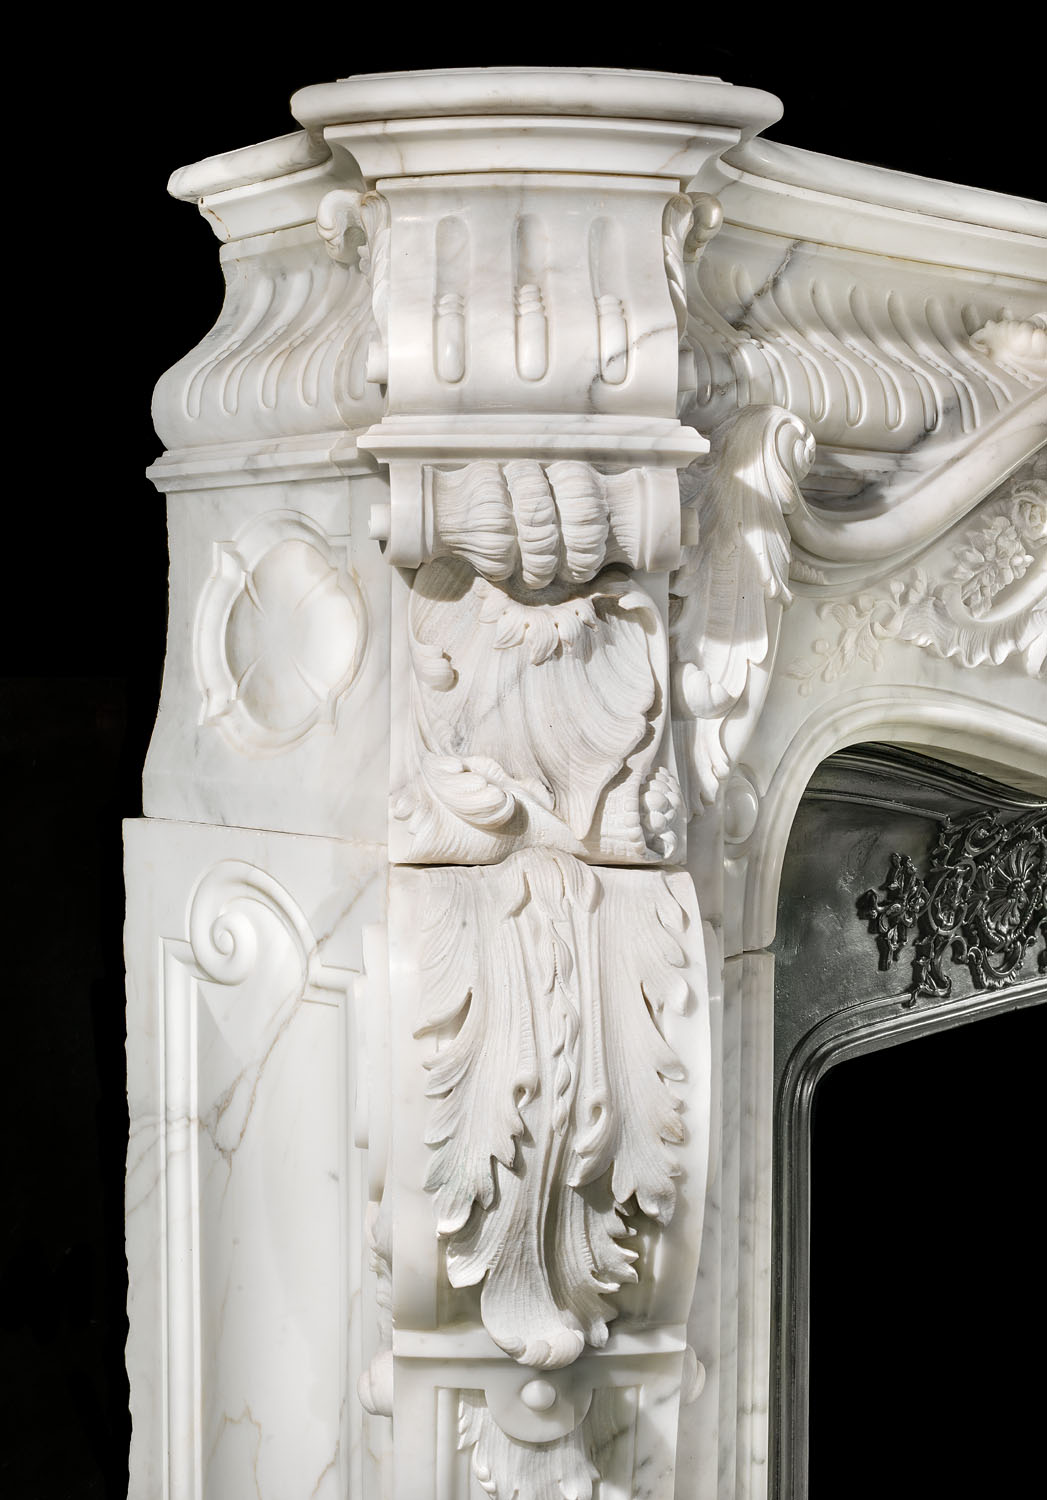 A massive and elaborately carved Rococo Baroque style antique marble chimneypiece